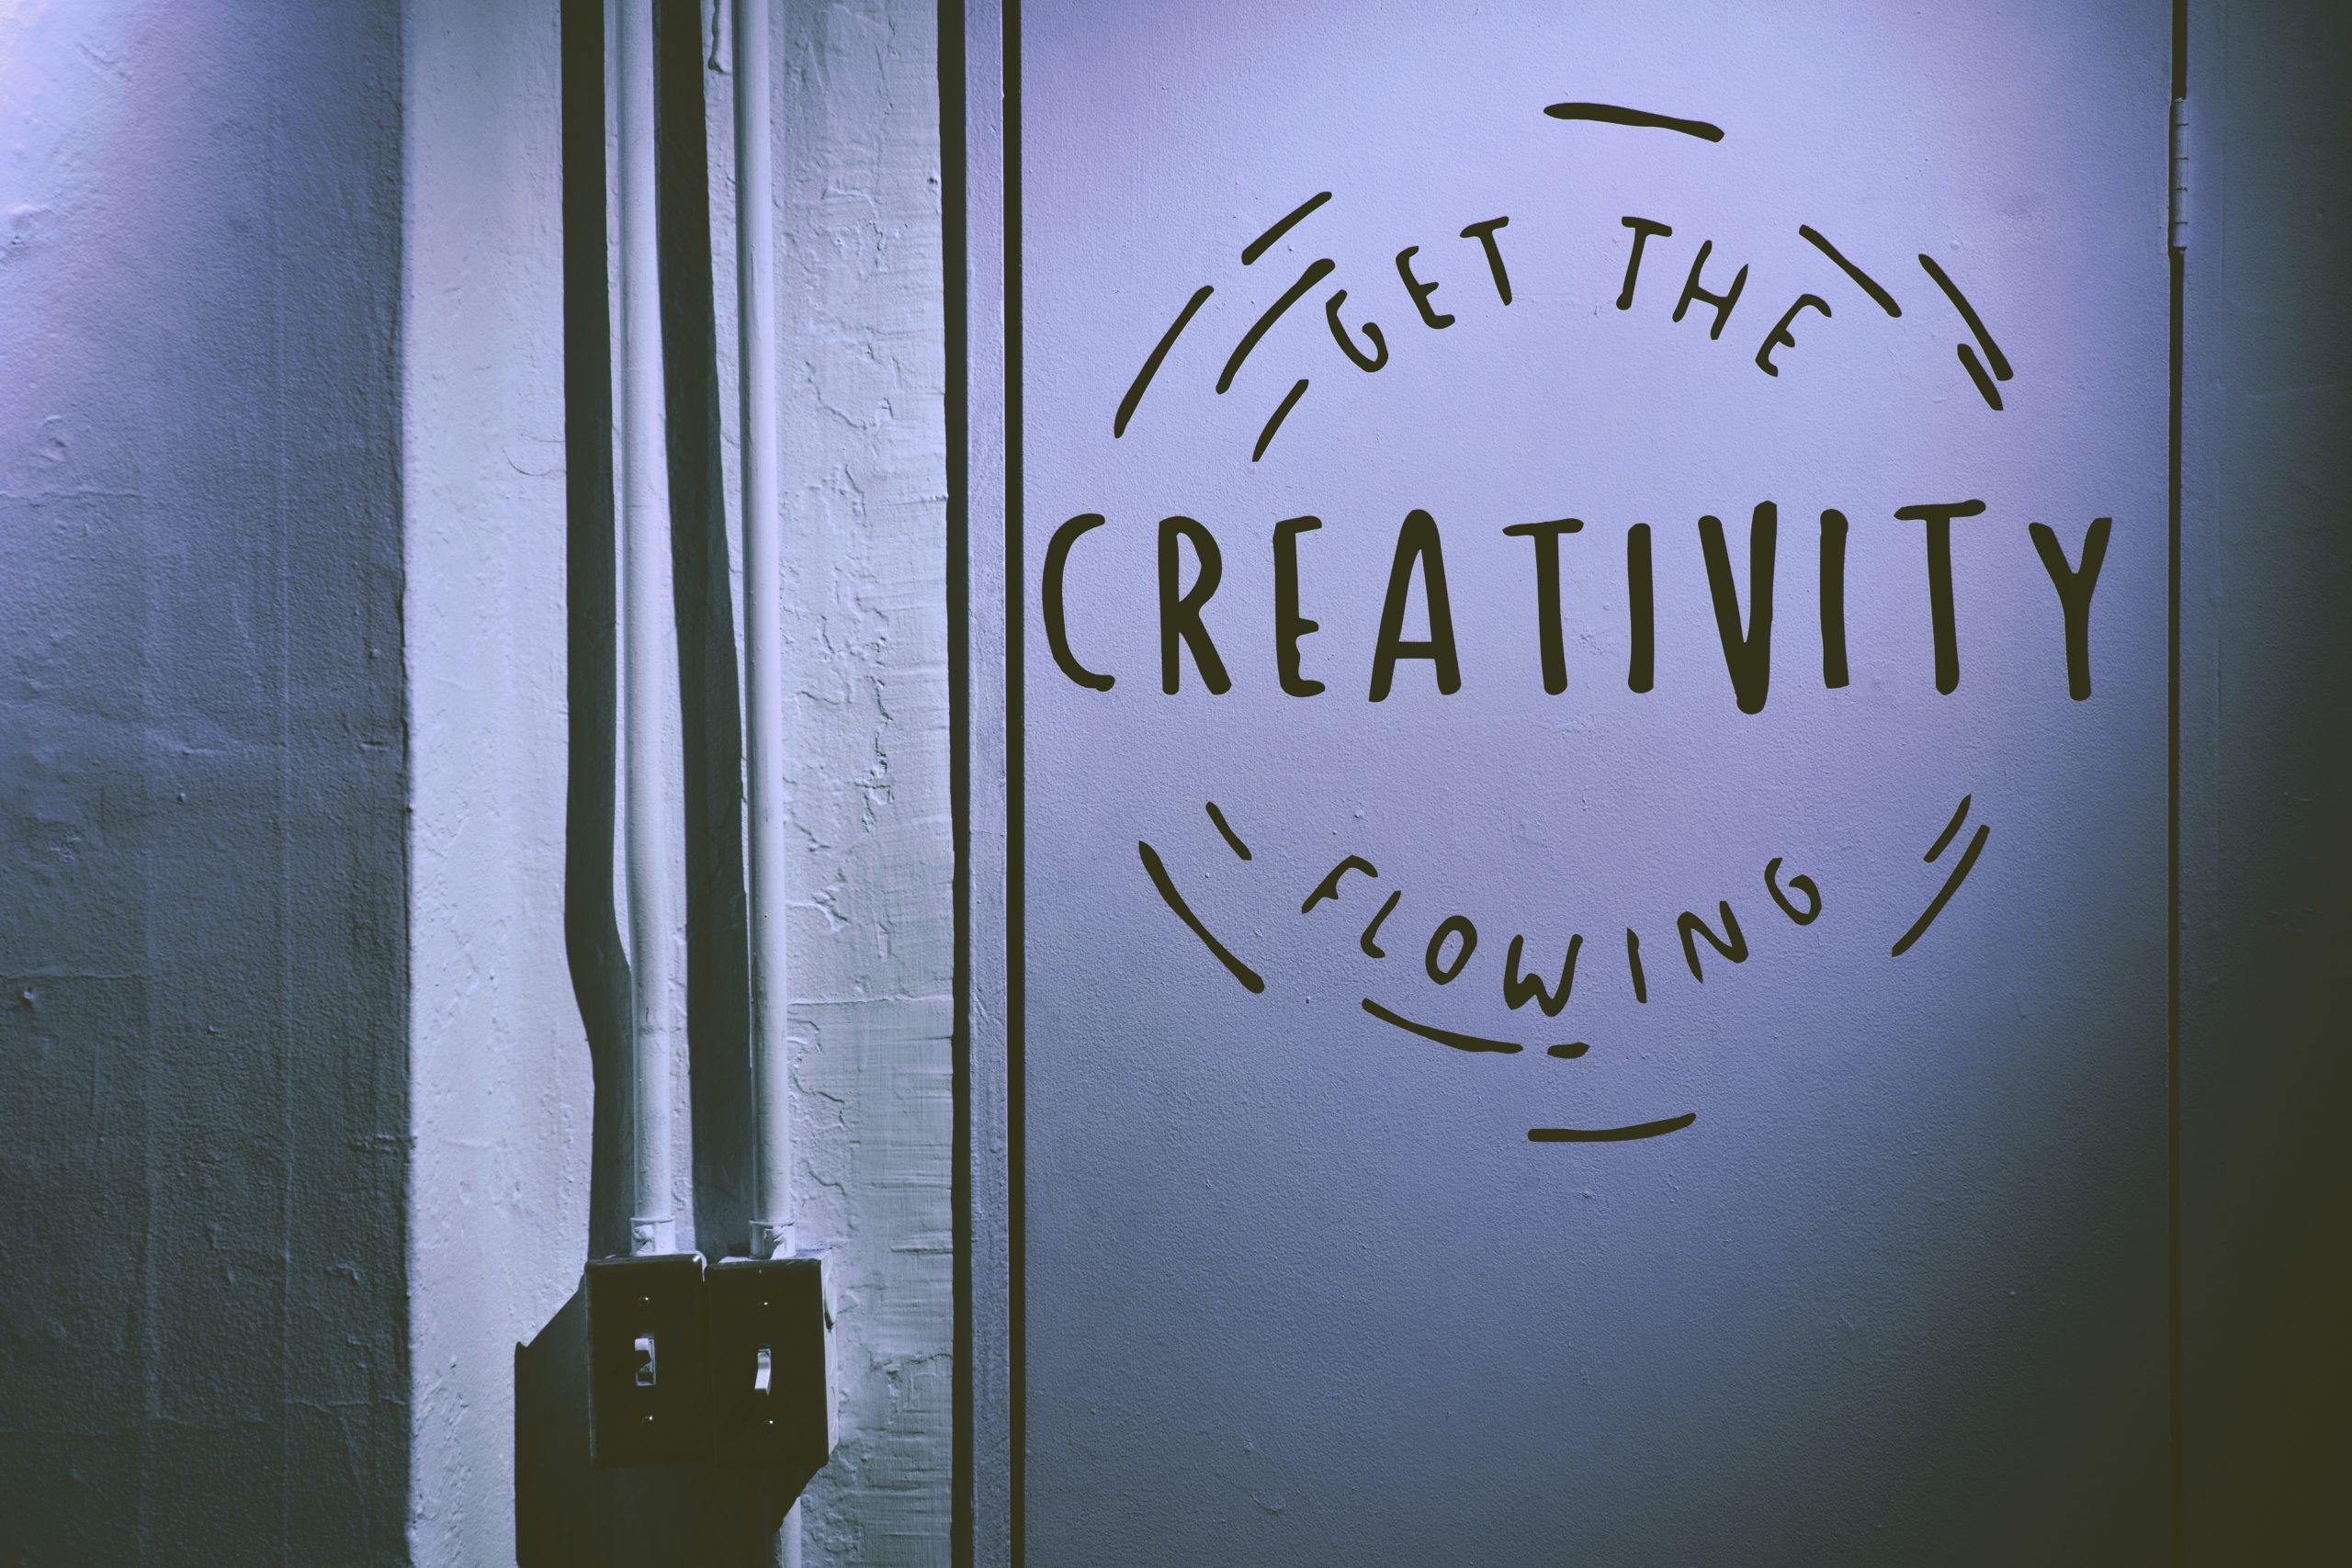 Get the creative flowing with our graphic design agency